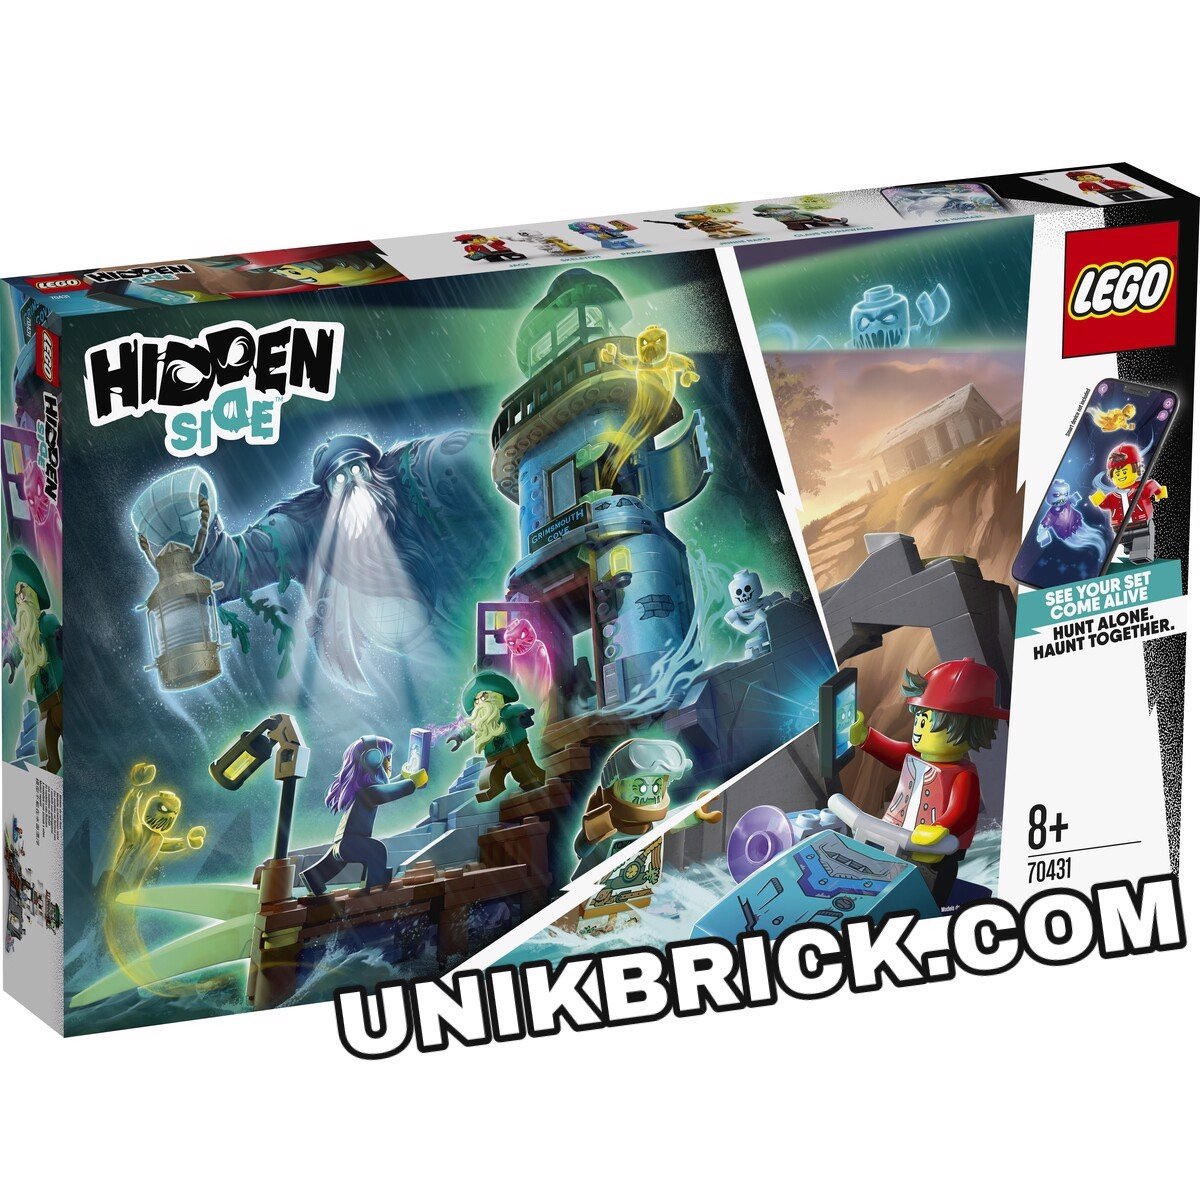 [HÀNG ĐẶT/ ORDER] LEGO Hidden Side 70431 The Lighthouse of Darkness